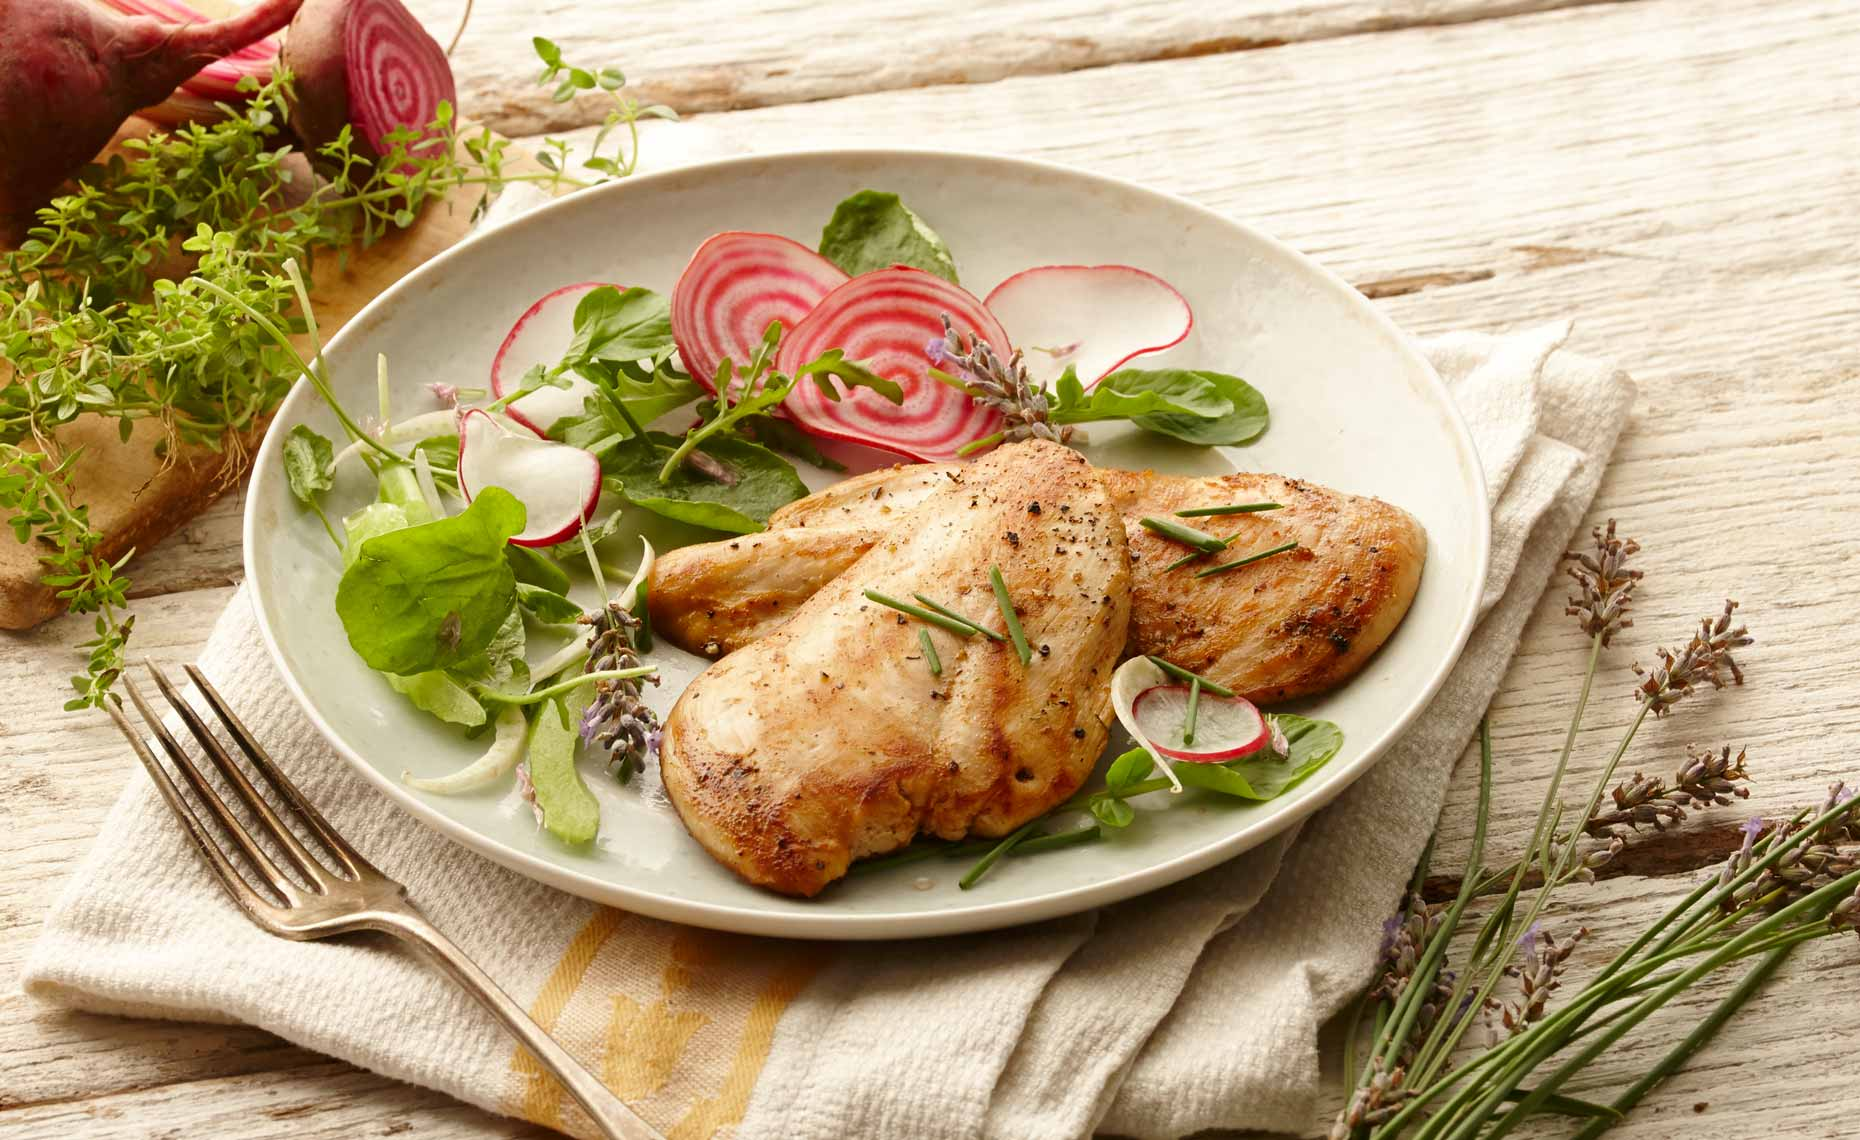 meat-photographers-chicken-roasted-radish-21